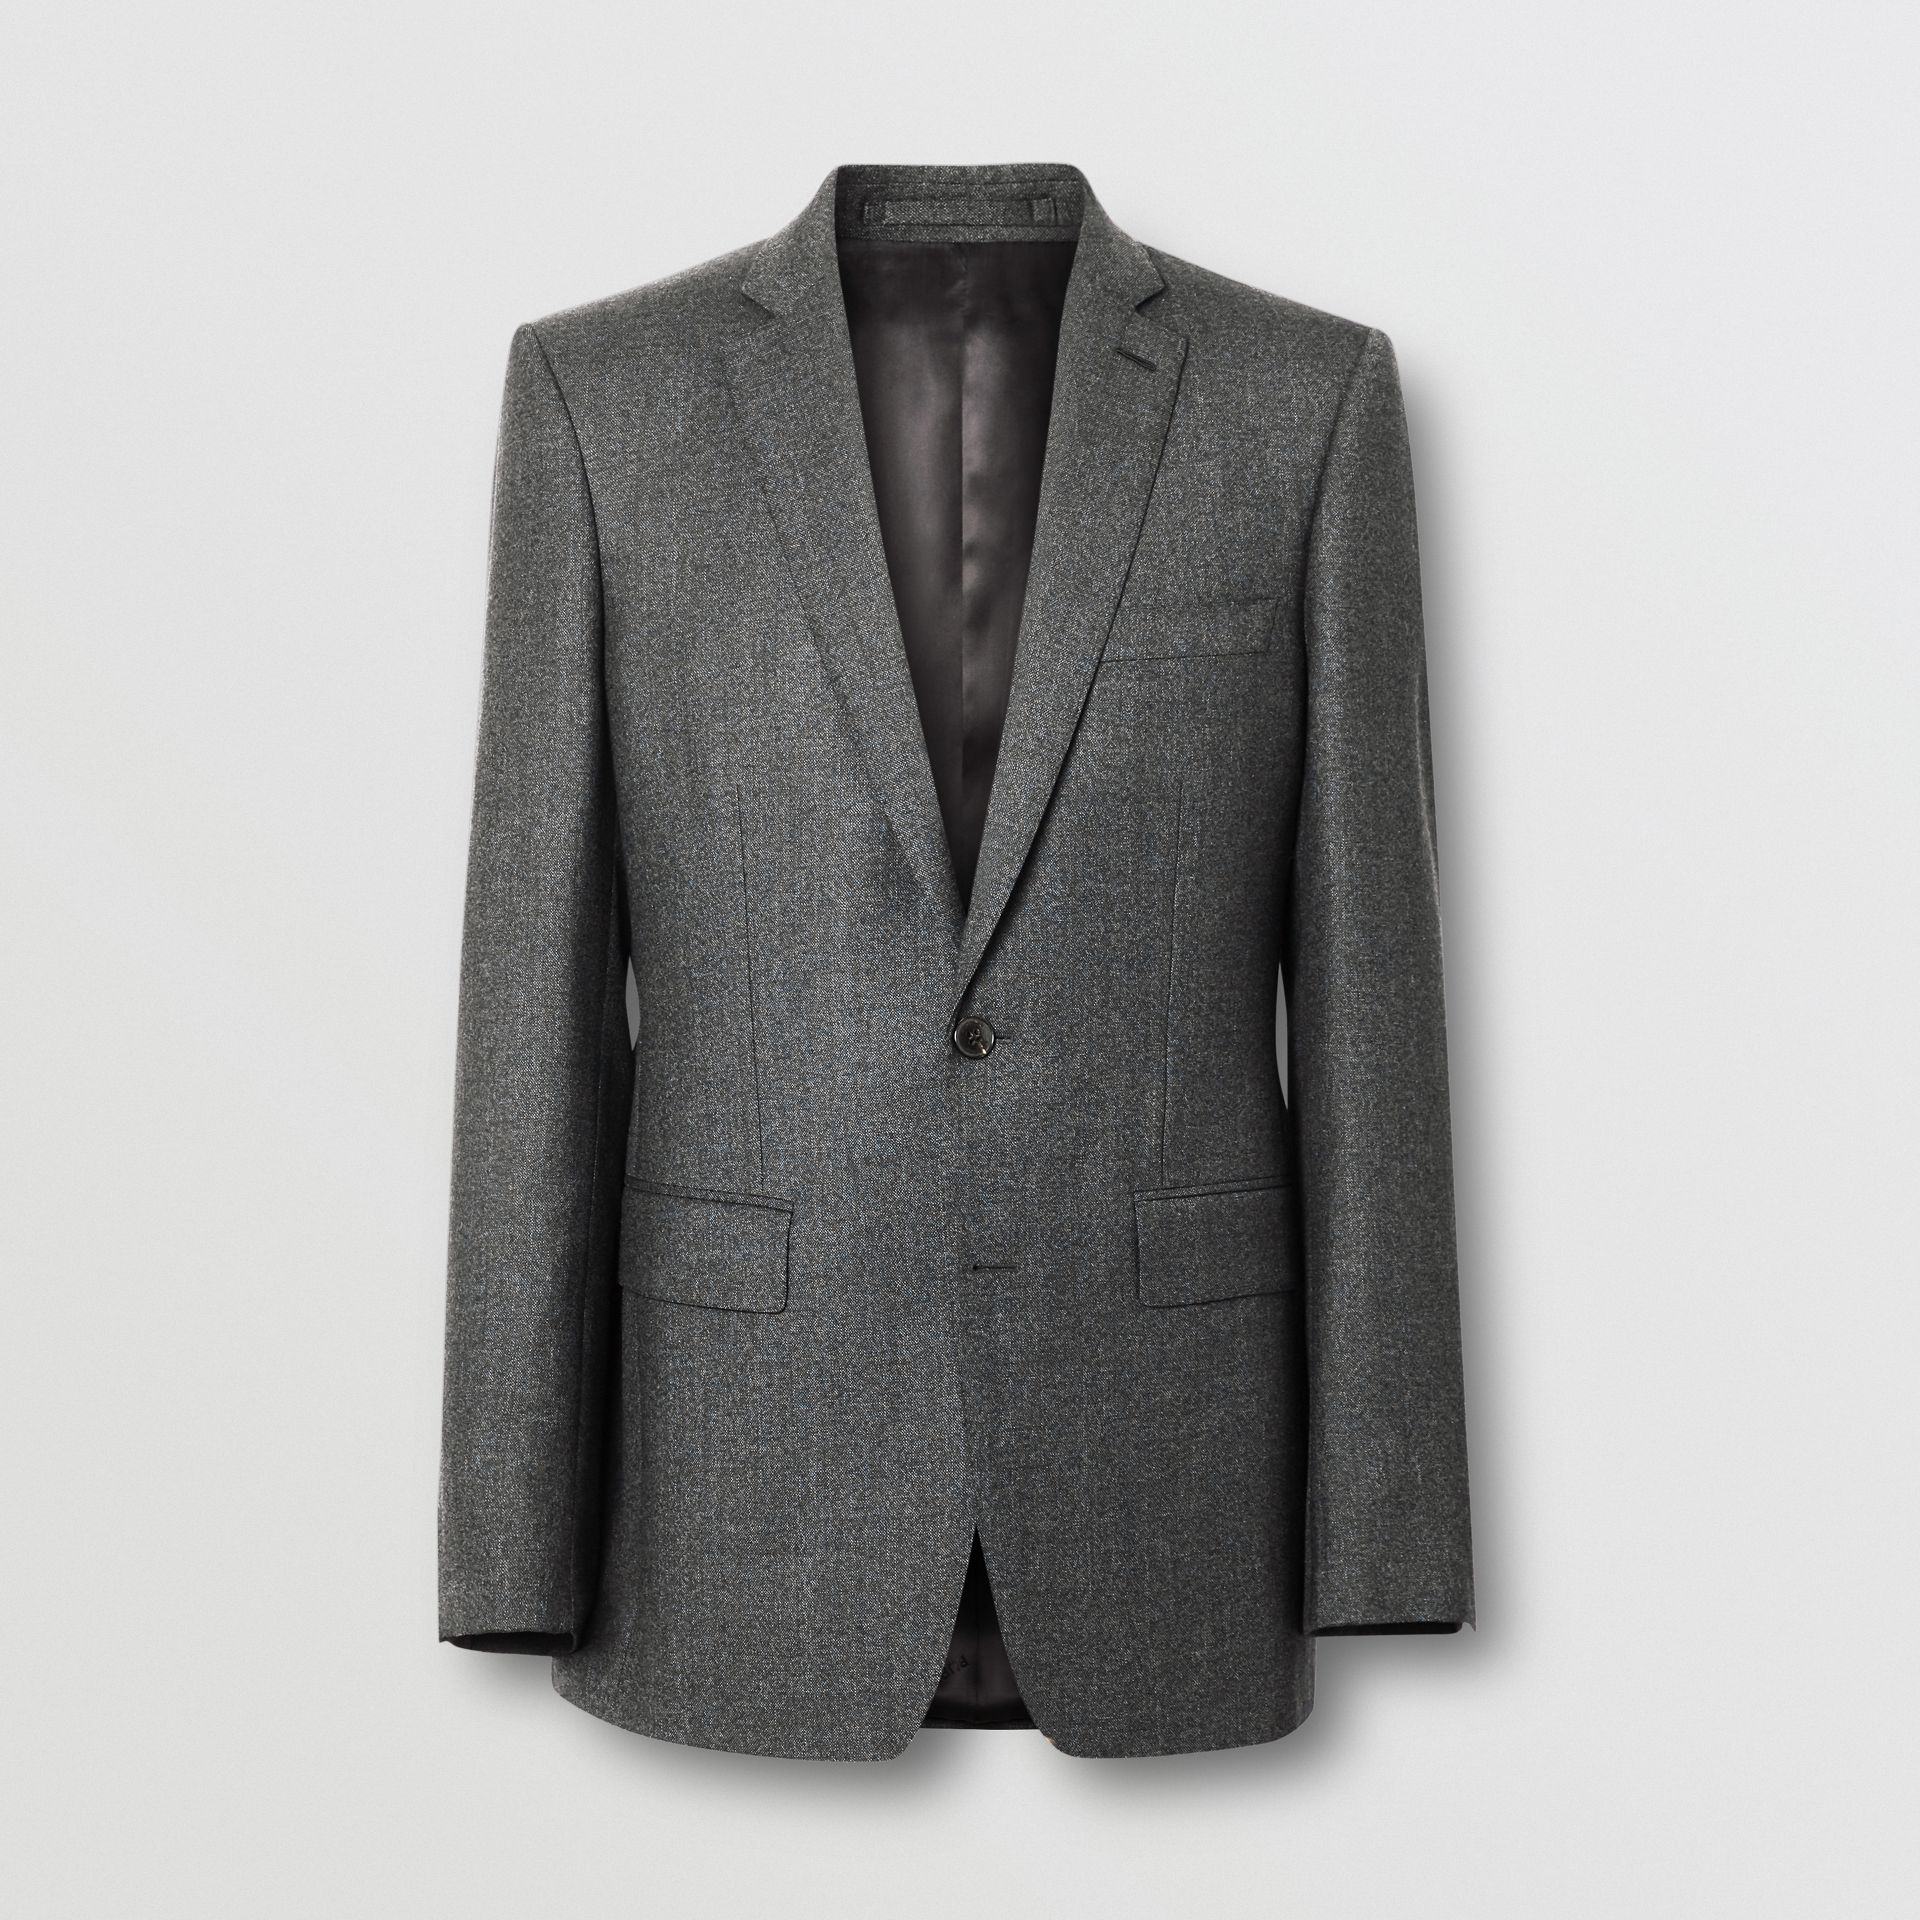 English Fit Sharkskin Wool Suit in Black Melange - Men | Burberry Australia - gallery image 3